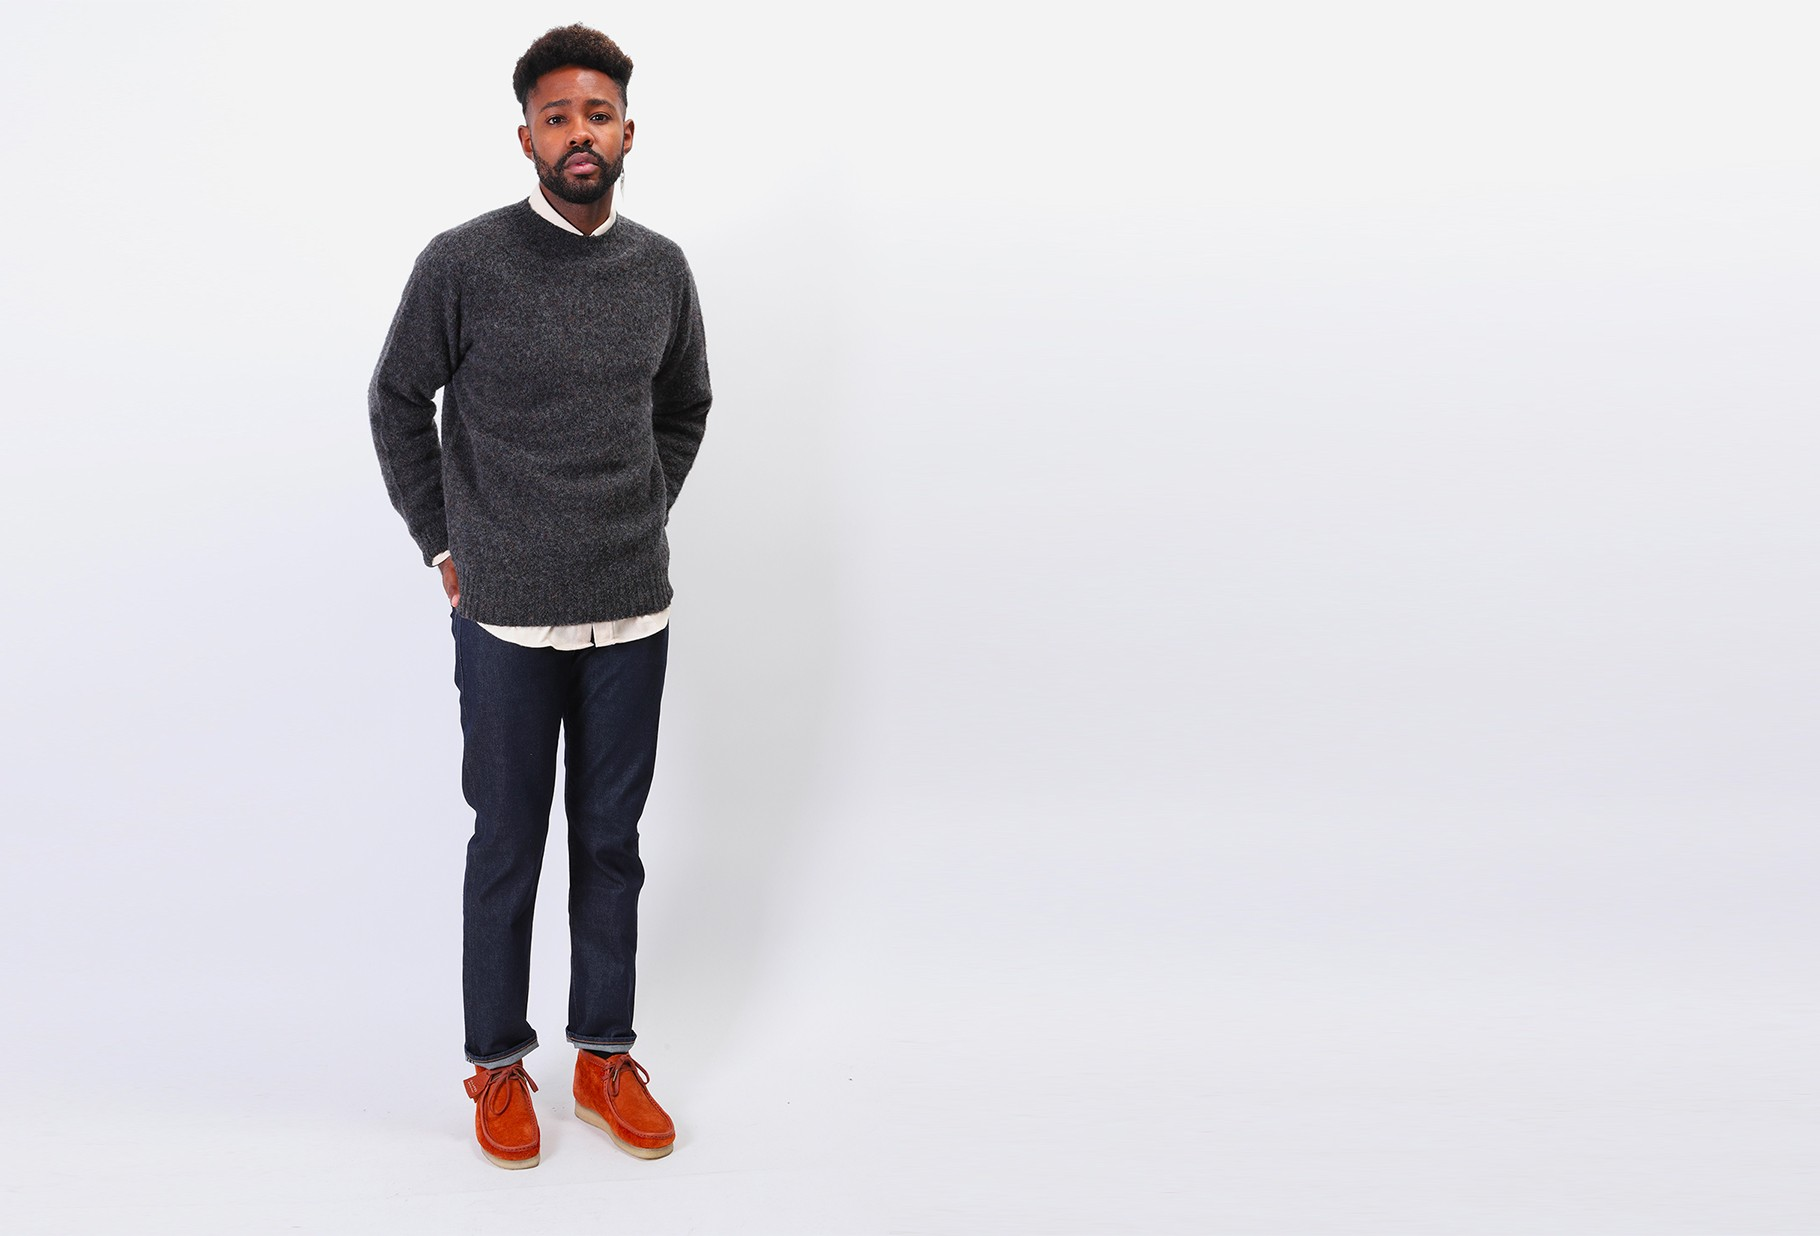 LEVIS MADE CRAFTED / Lmc 502 lmc resin Rinsed